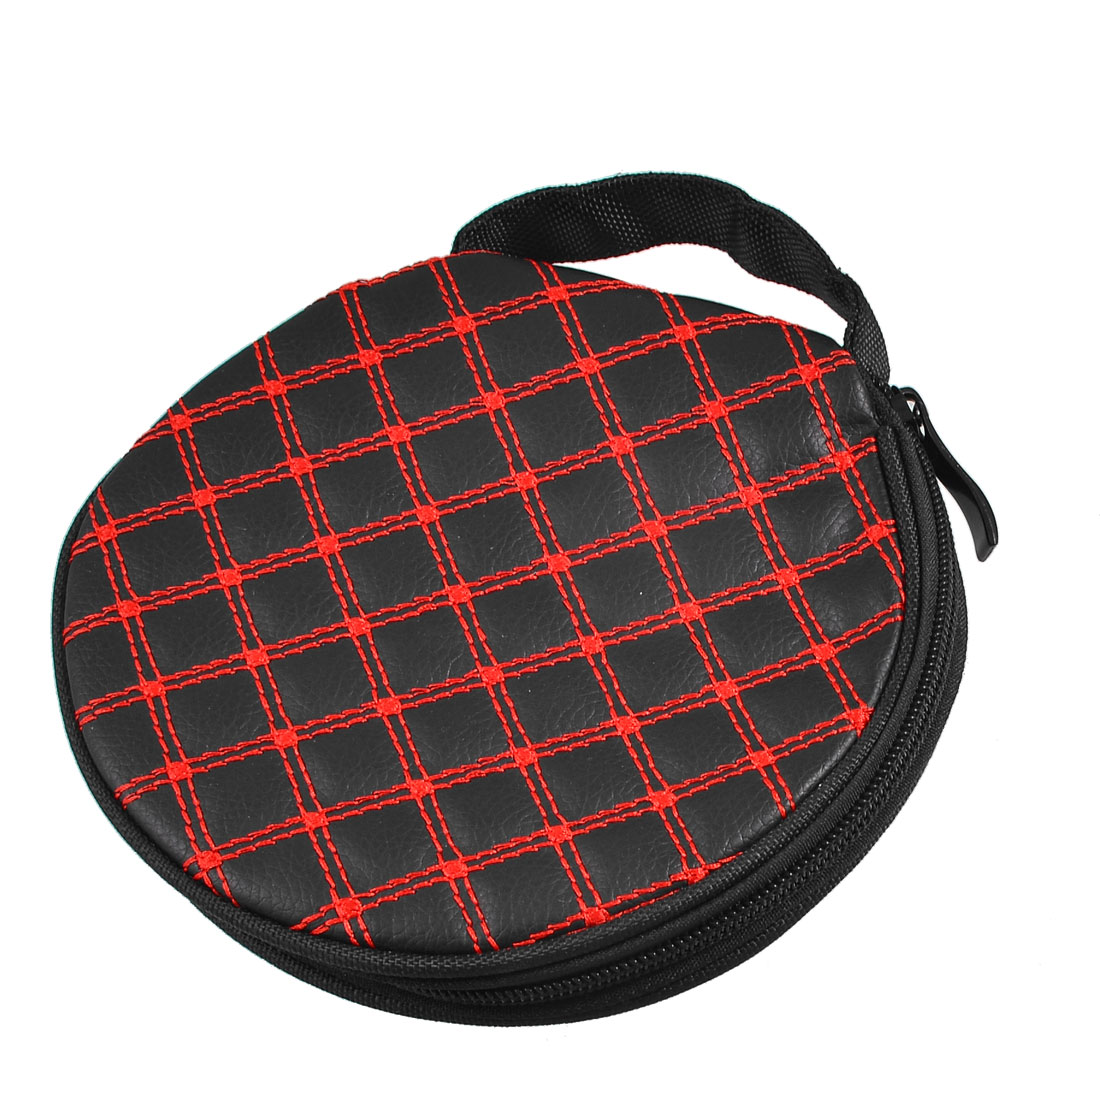 Handheld 20 CD Discs Zipper Closure Striped Holder Bag Red Black